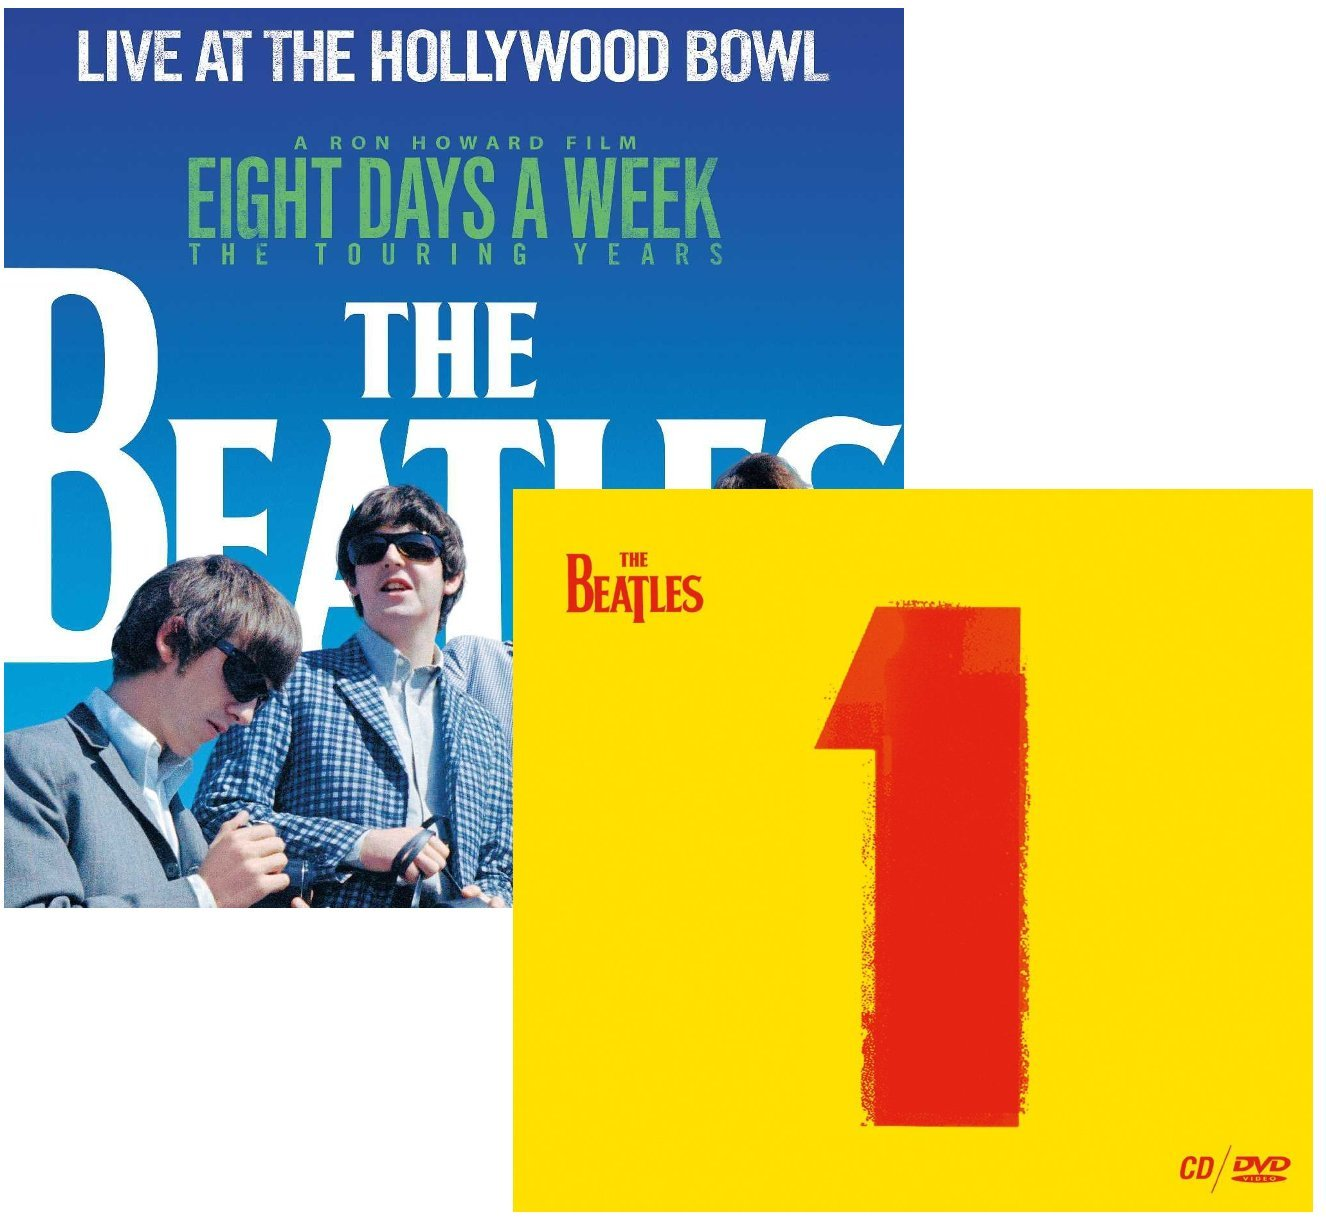 Live At The Hollywood Bowl Eight Days A Week - 1 (CD + DVD) - The Beatles 2 CD Album Bundling by Various